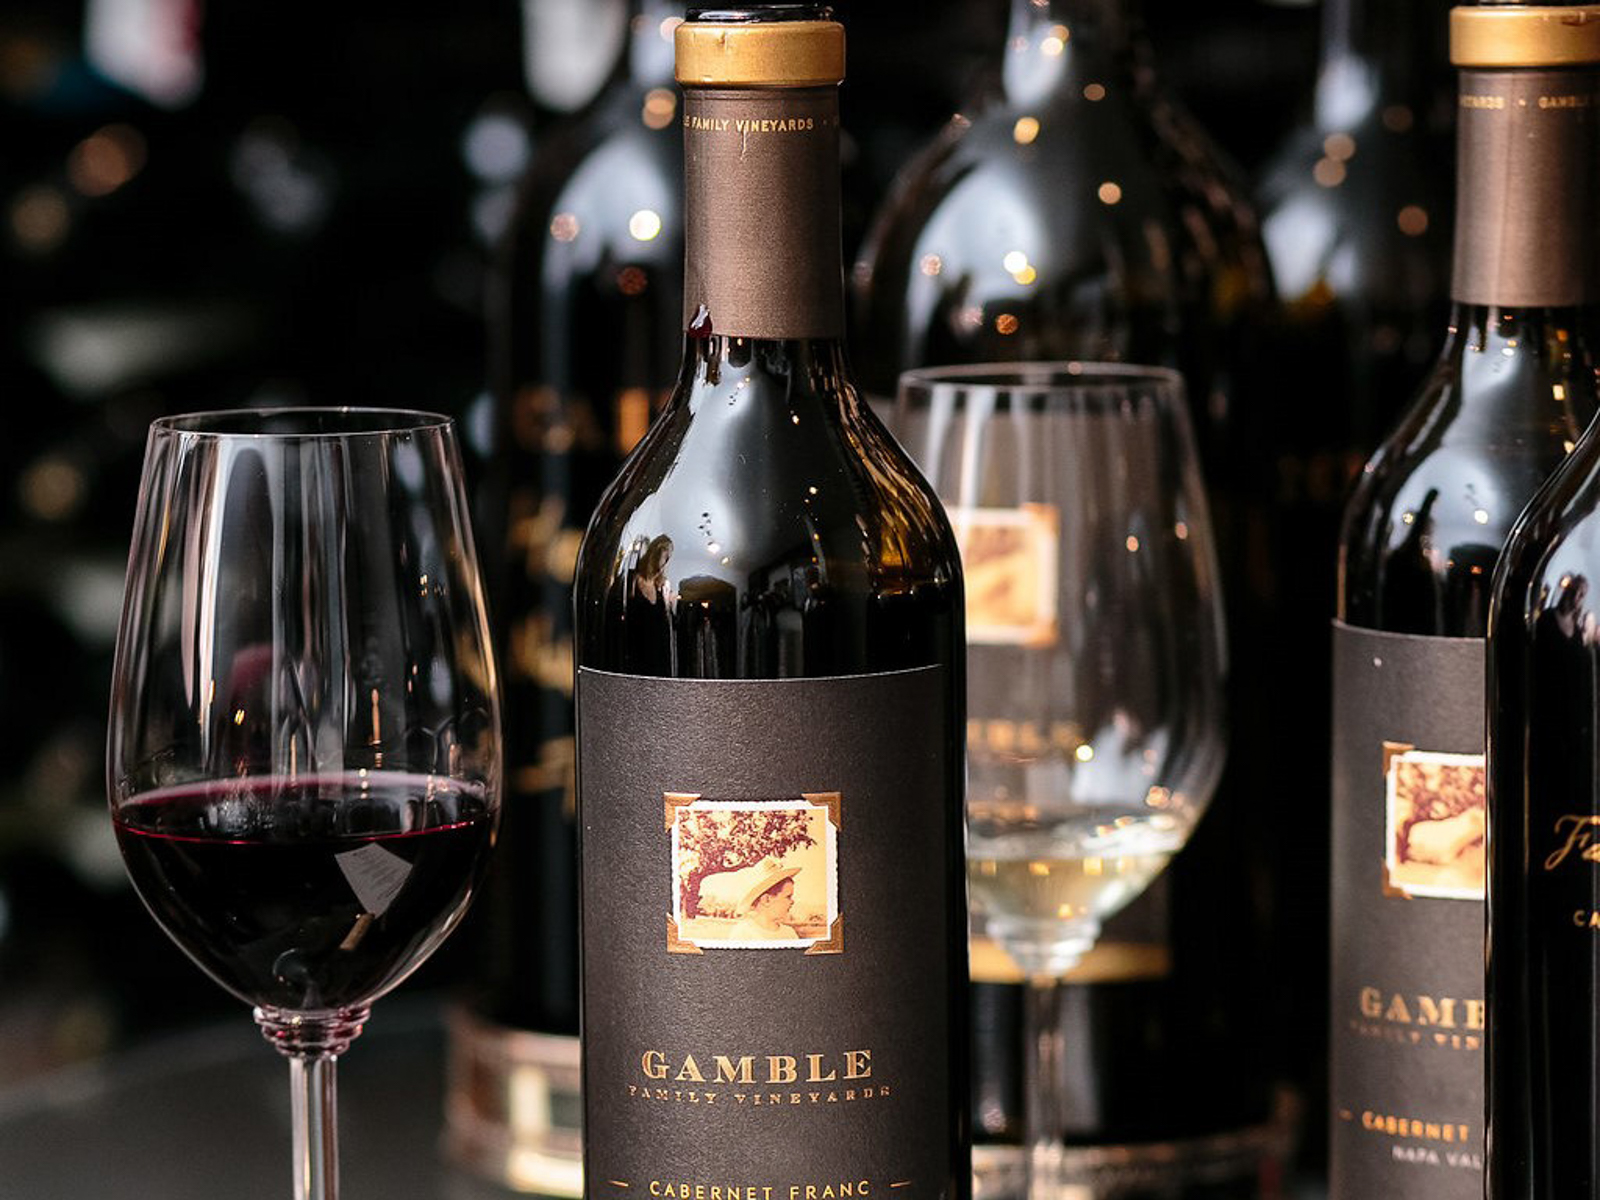 2017 Gamble Family Vineyards Cabernet Franc Napa Valley